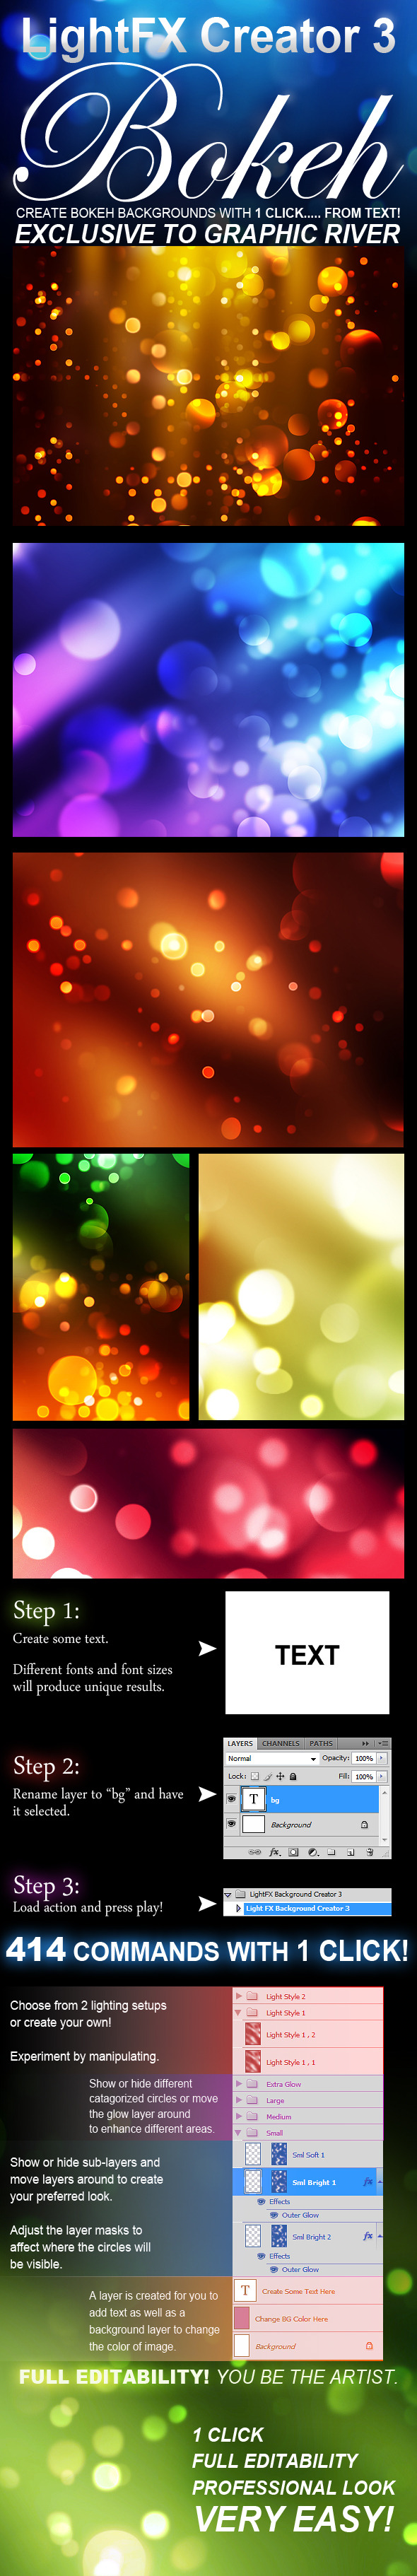 LightFX Background Creator 3 (Bokeh)